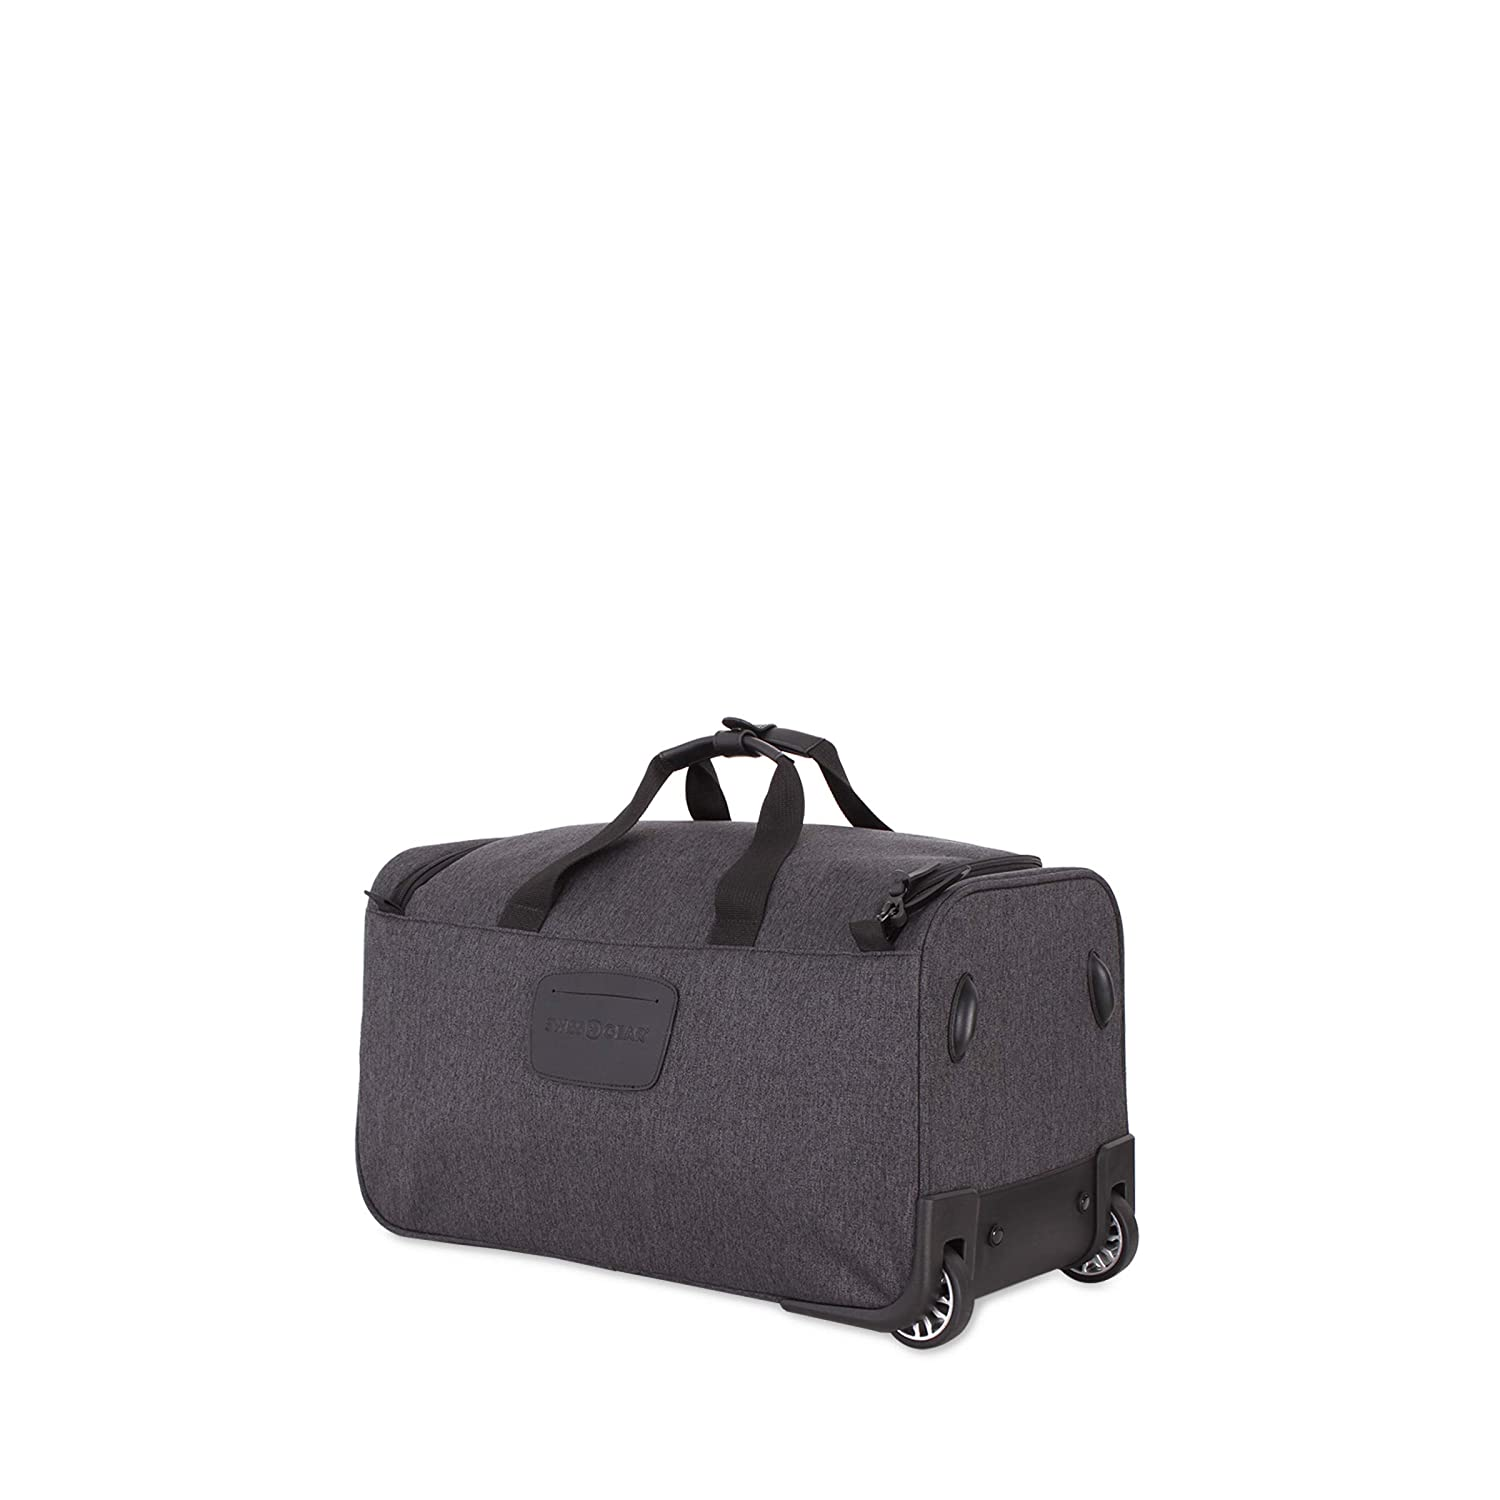 b0c63d421 Amazon.com | SWISSGEAR Getaway Weekend Wheeled 19-inch Duffel Bag | Rolling  Travel Luggage | Men's and Women's - Dark Gray | Travel Duffels